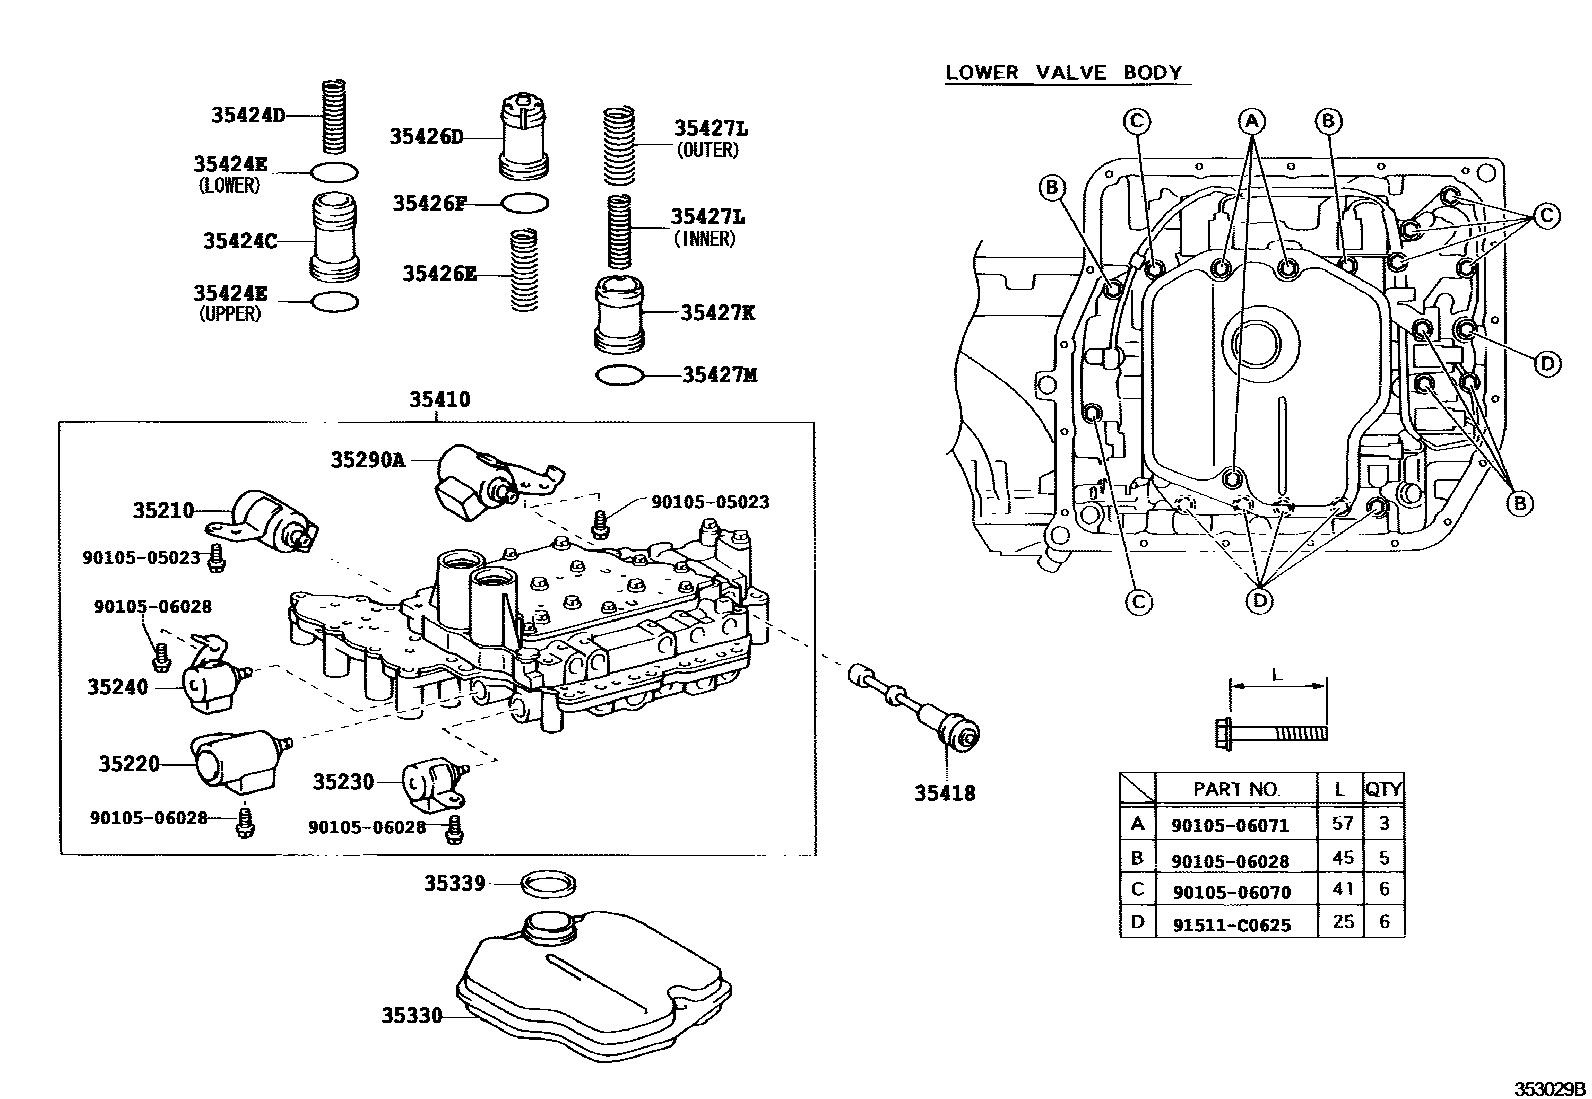 99 Lexus Gs300 Transmission Diagram Search For Wiring Diagrams Gs400 Of Coil Pack On 96 Es300 Trusted U2022 Rh Weneedradio Org 1999 Mpg